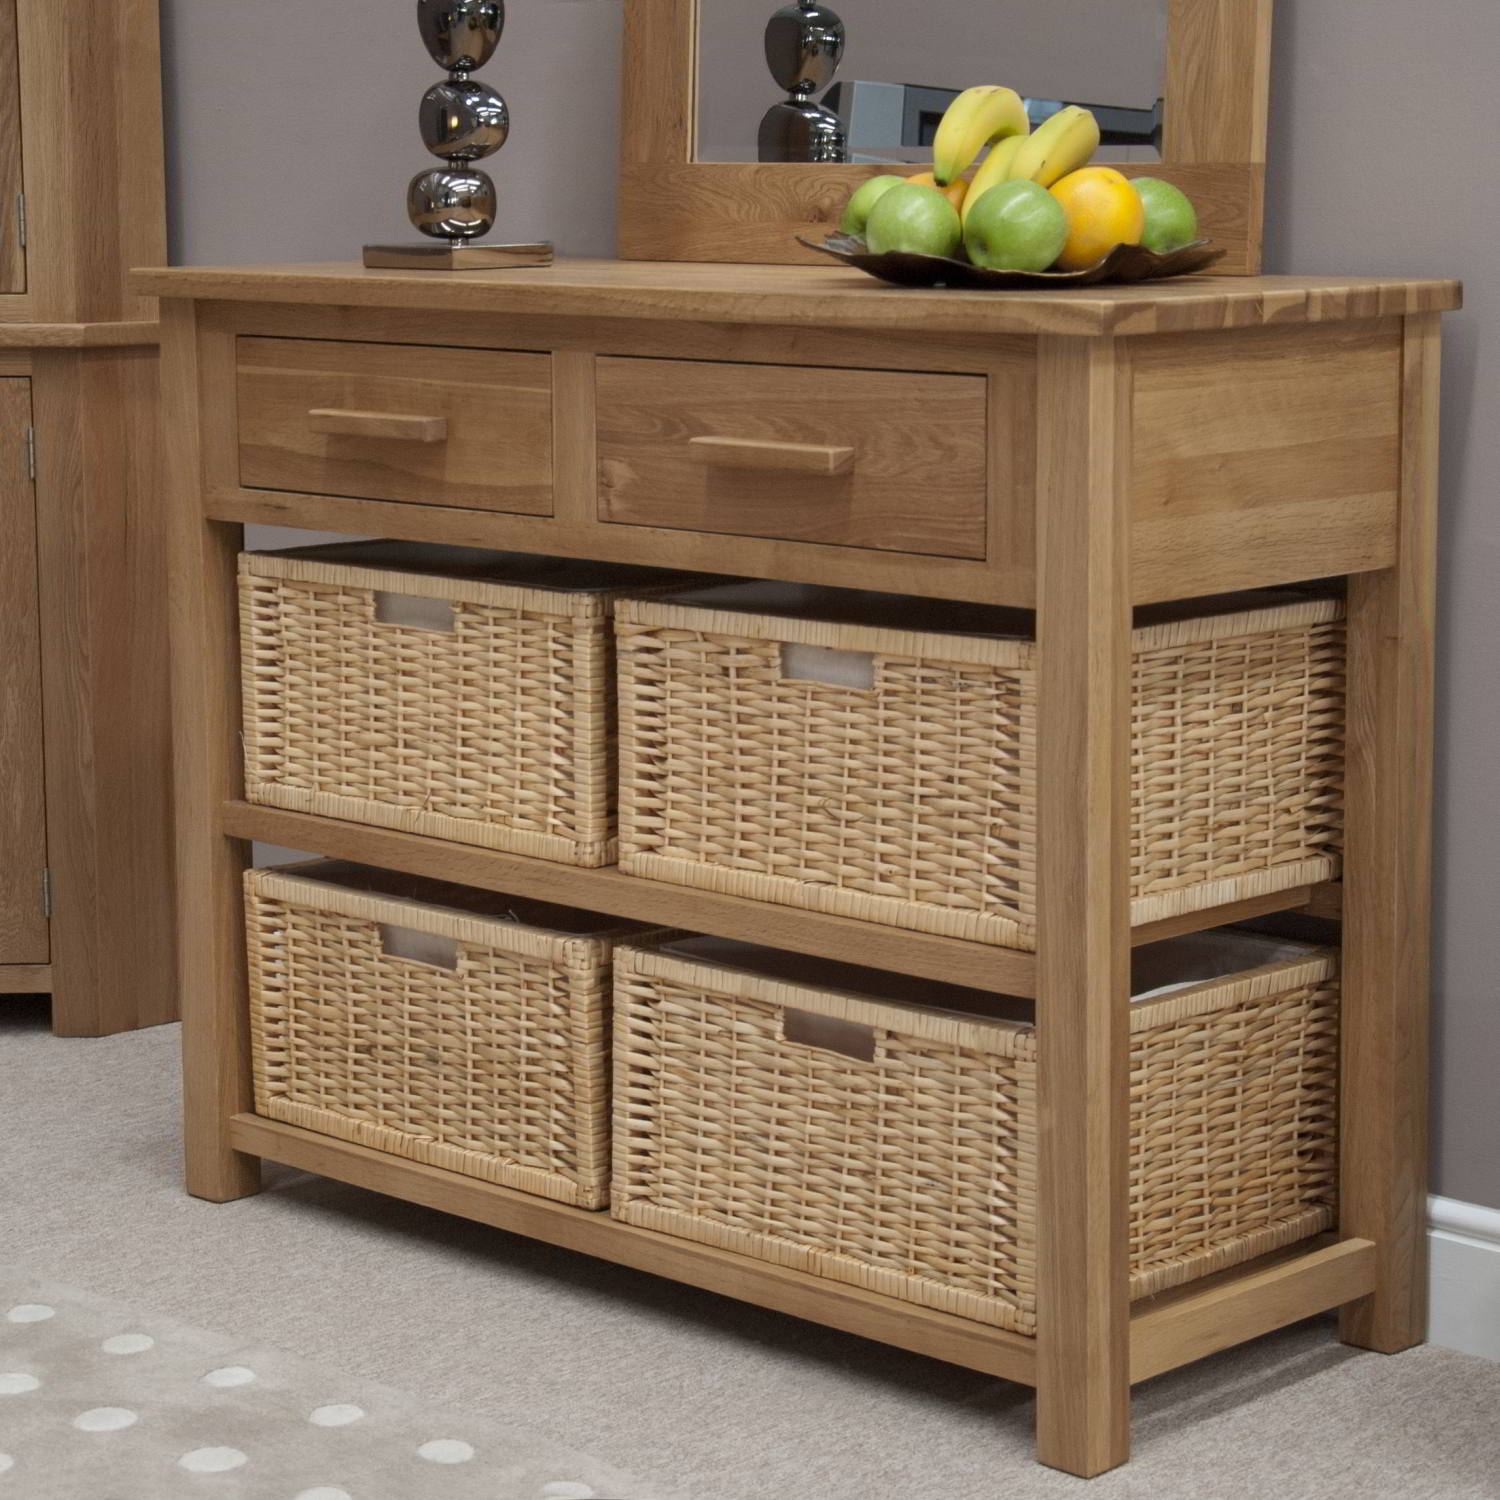 Eton solid modern oak hallway furniture basket hall Console tables with storage